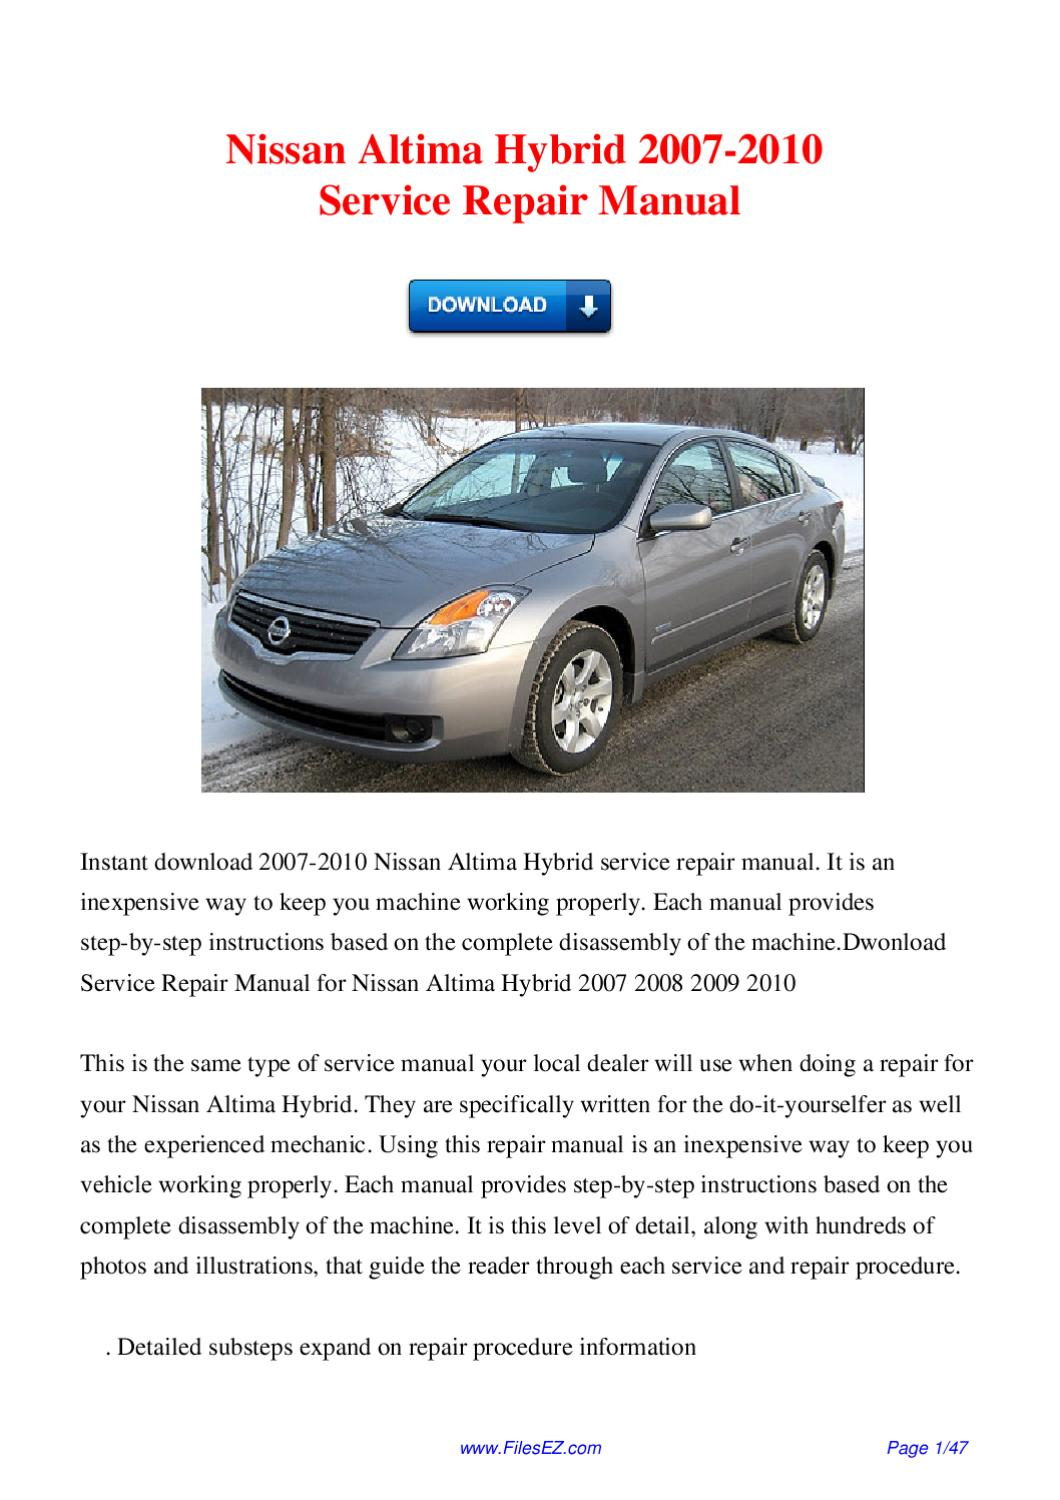 2010 nissan altima hybrid owners manual